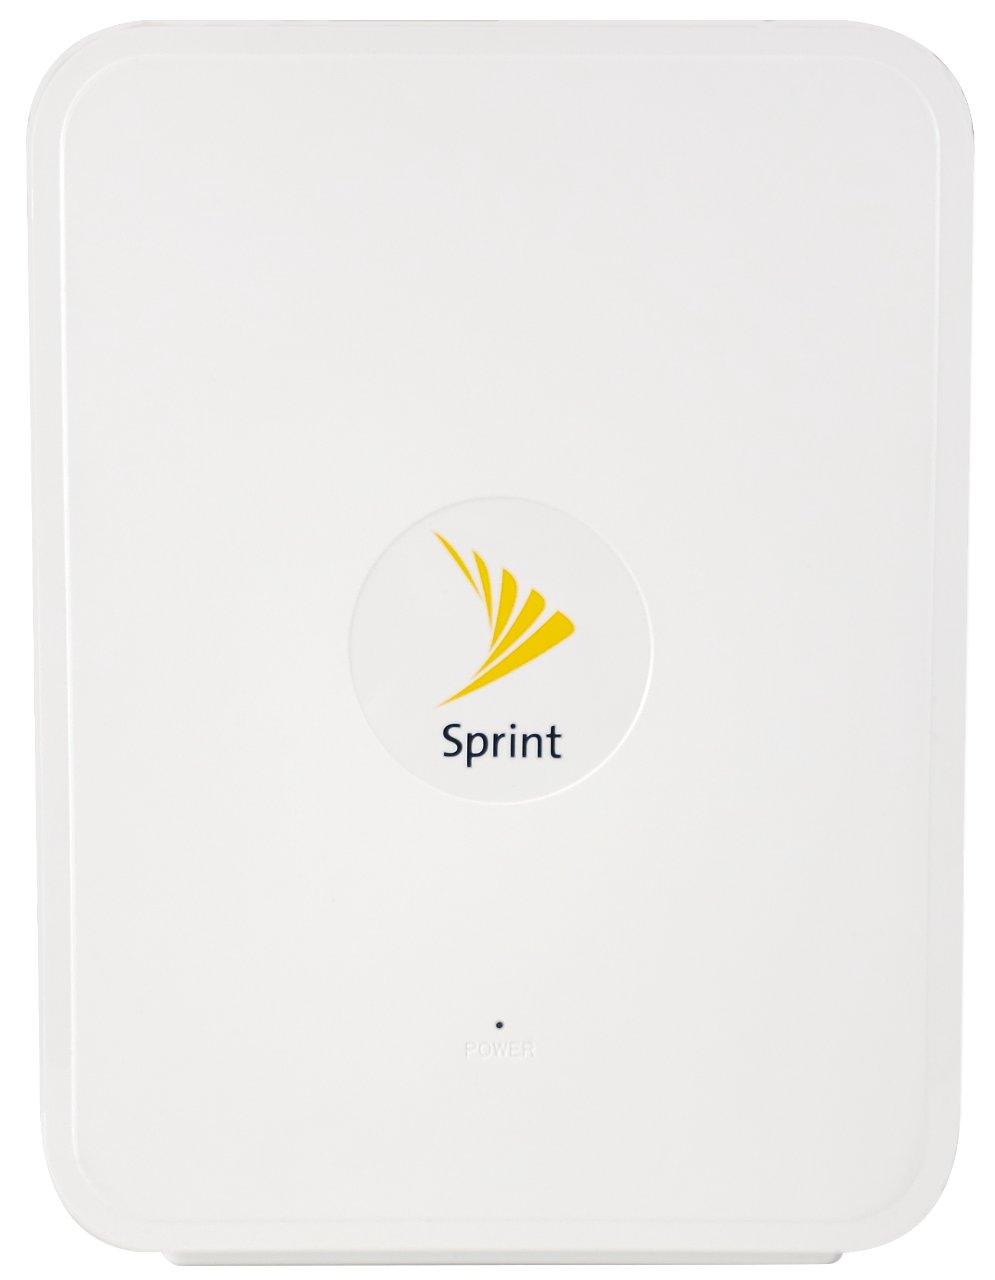 Sprint Magic Box dorado - AMP de voz